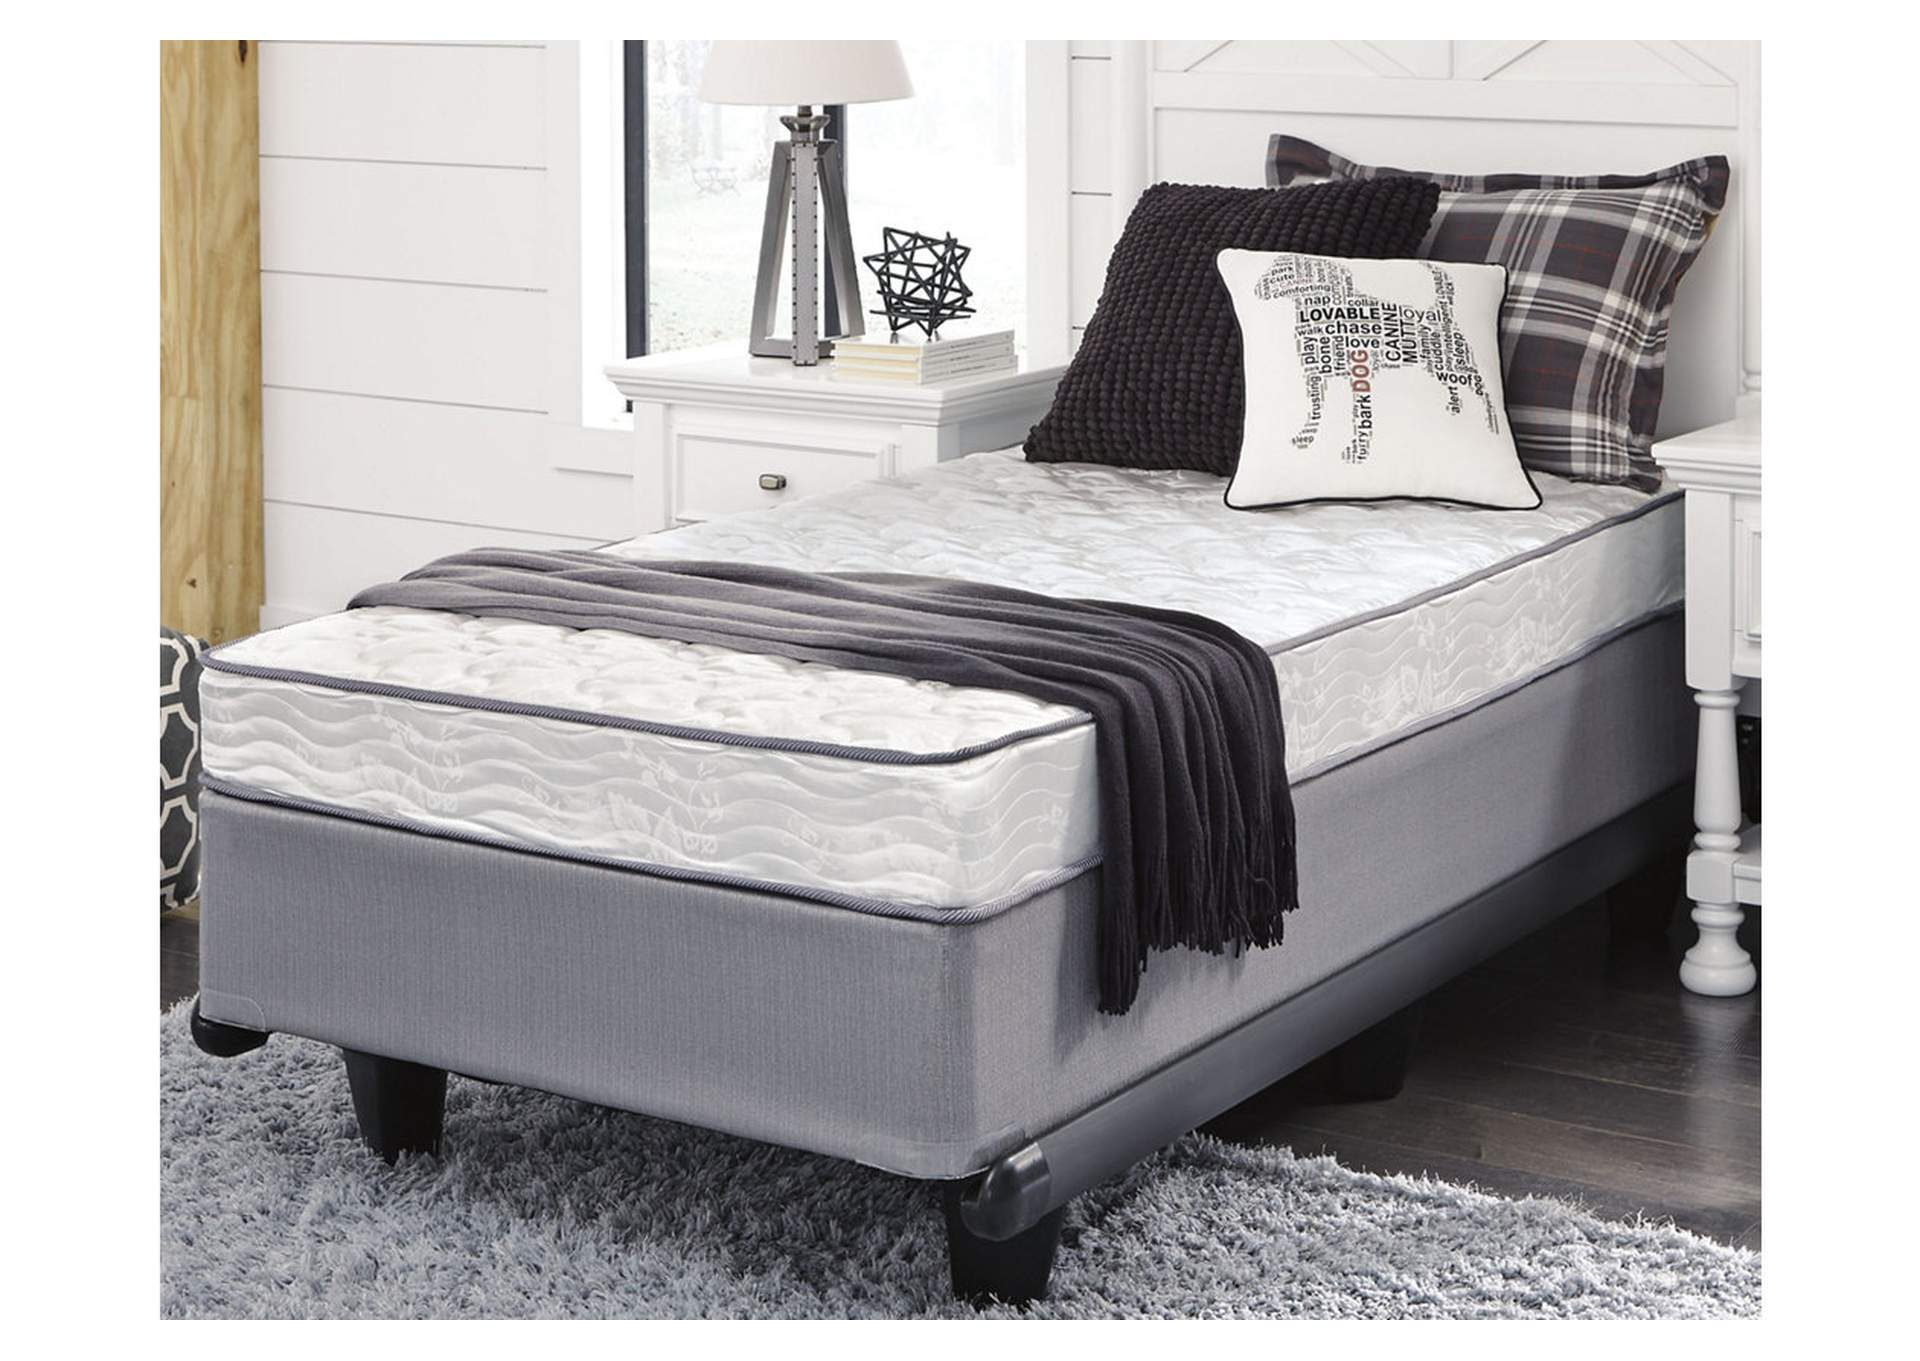 6 Inch Bonell Full Mattress,Sierra Sleep by Ashley